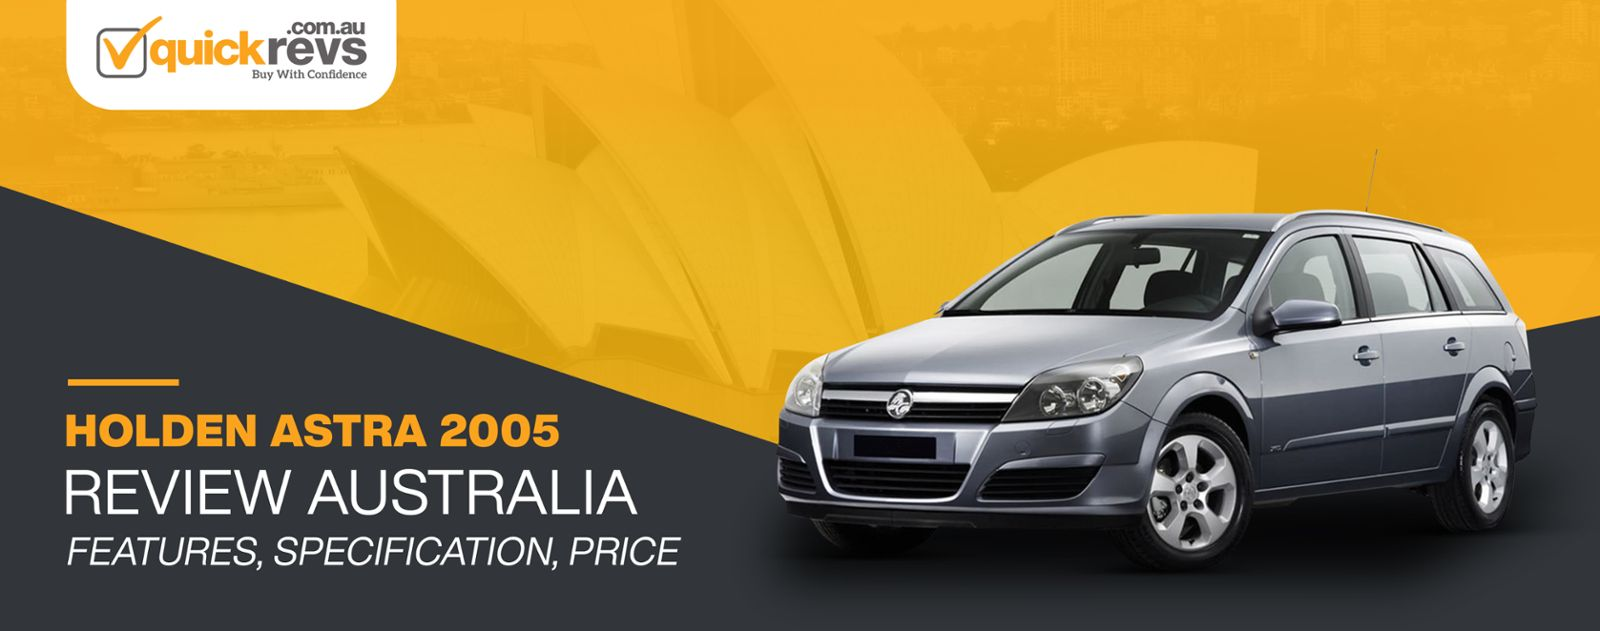 Holden Astra 2005 Review Australia | Features, Specification, Price